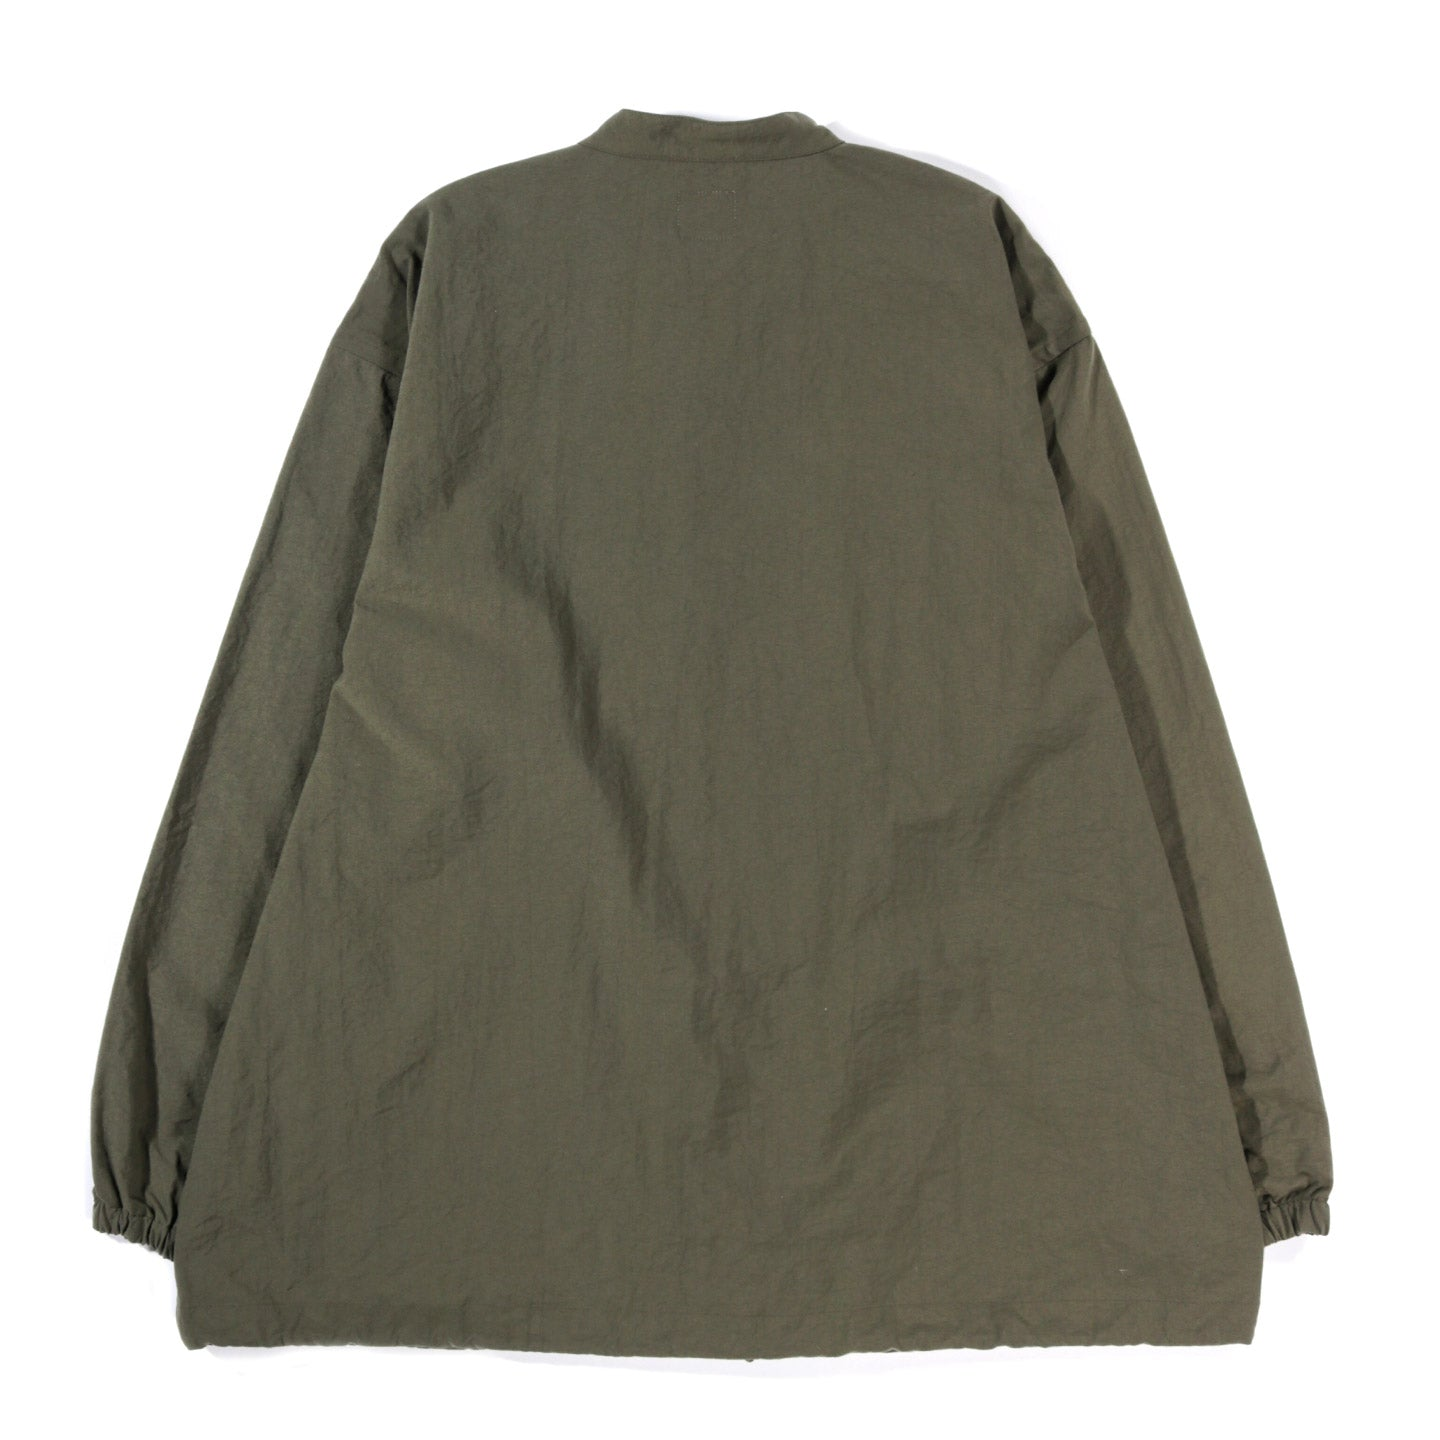 THE CONSPIRES STAND COLLAR COAT OLIVE